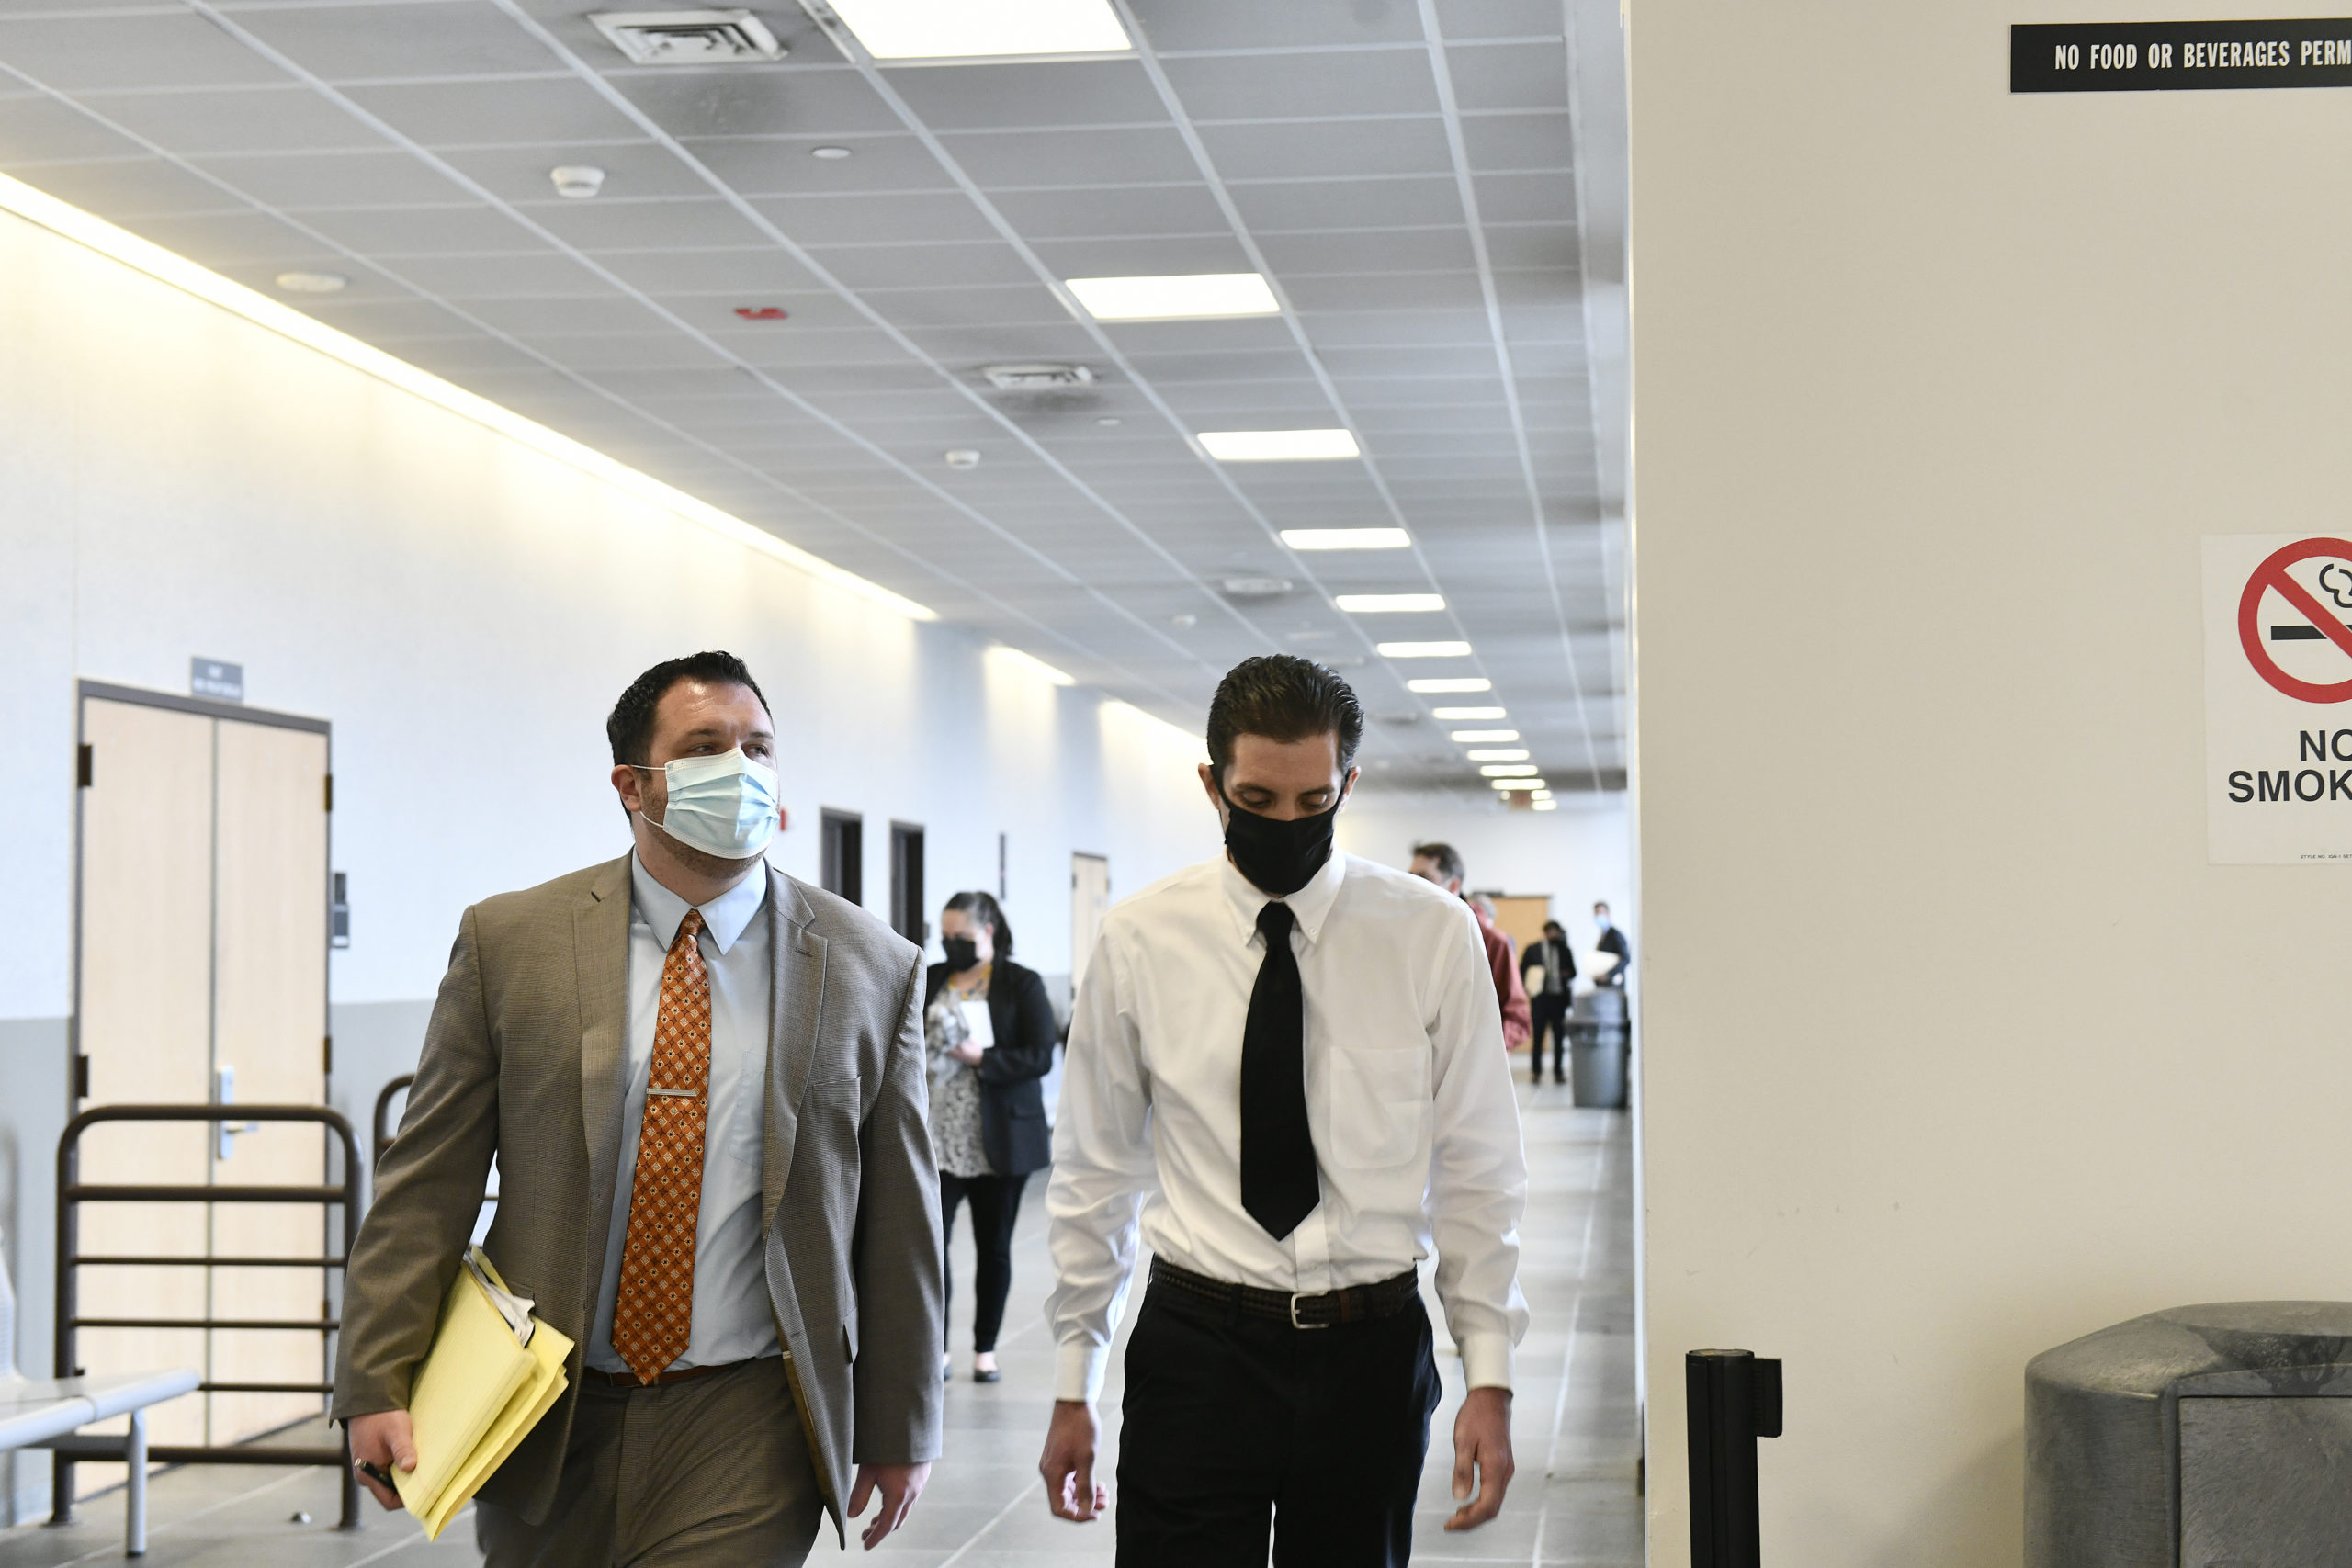 Mark A. Corrado, right, leaves the courtroom with his attorney on Thursday.  DANA SHAW